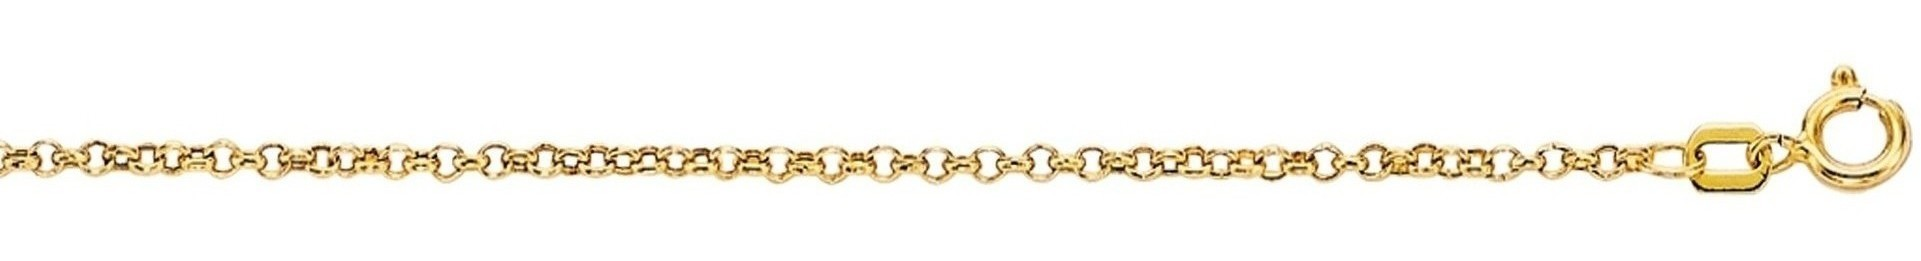 "16"" 10K Yellow Gold 1.90mm (0.07"") Polished Diamond Cut Rolo Chain w/ Spring Ring Clasp"